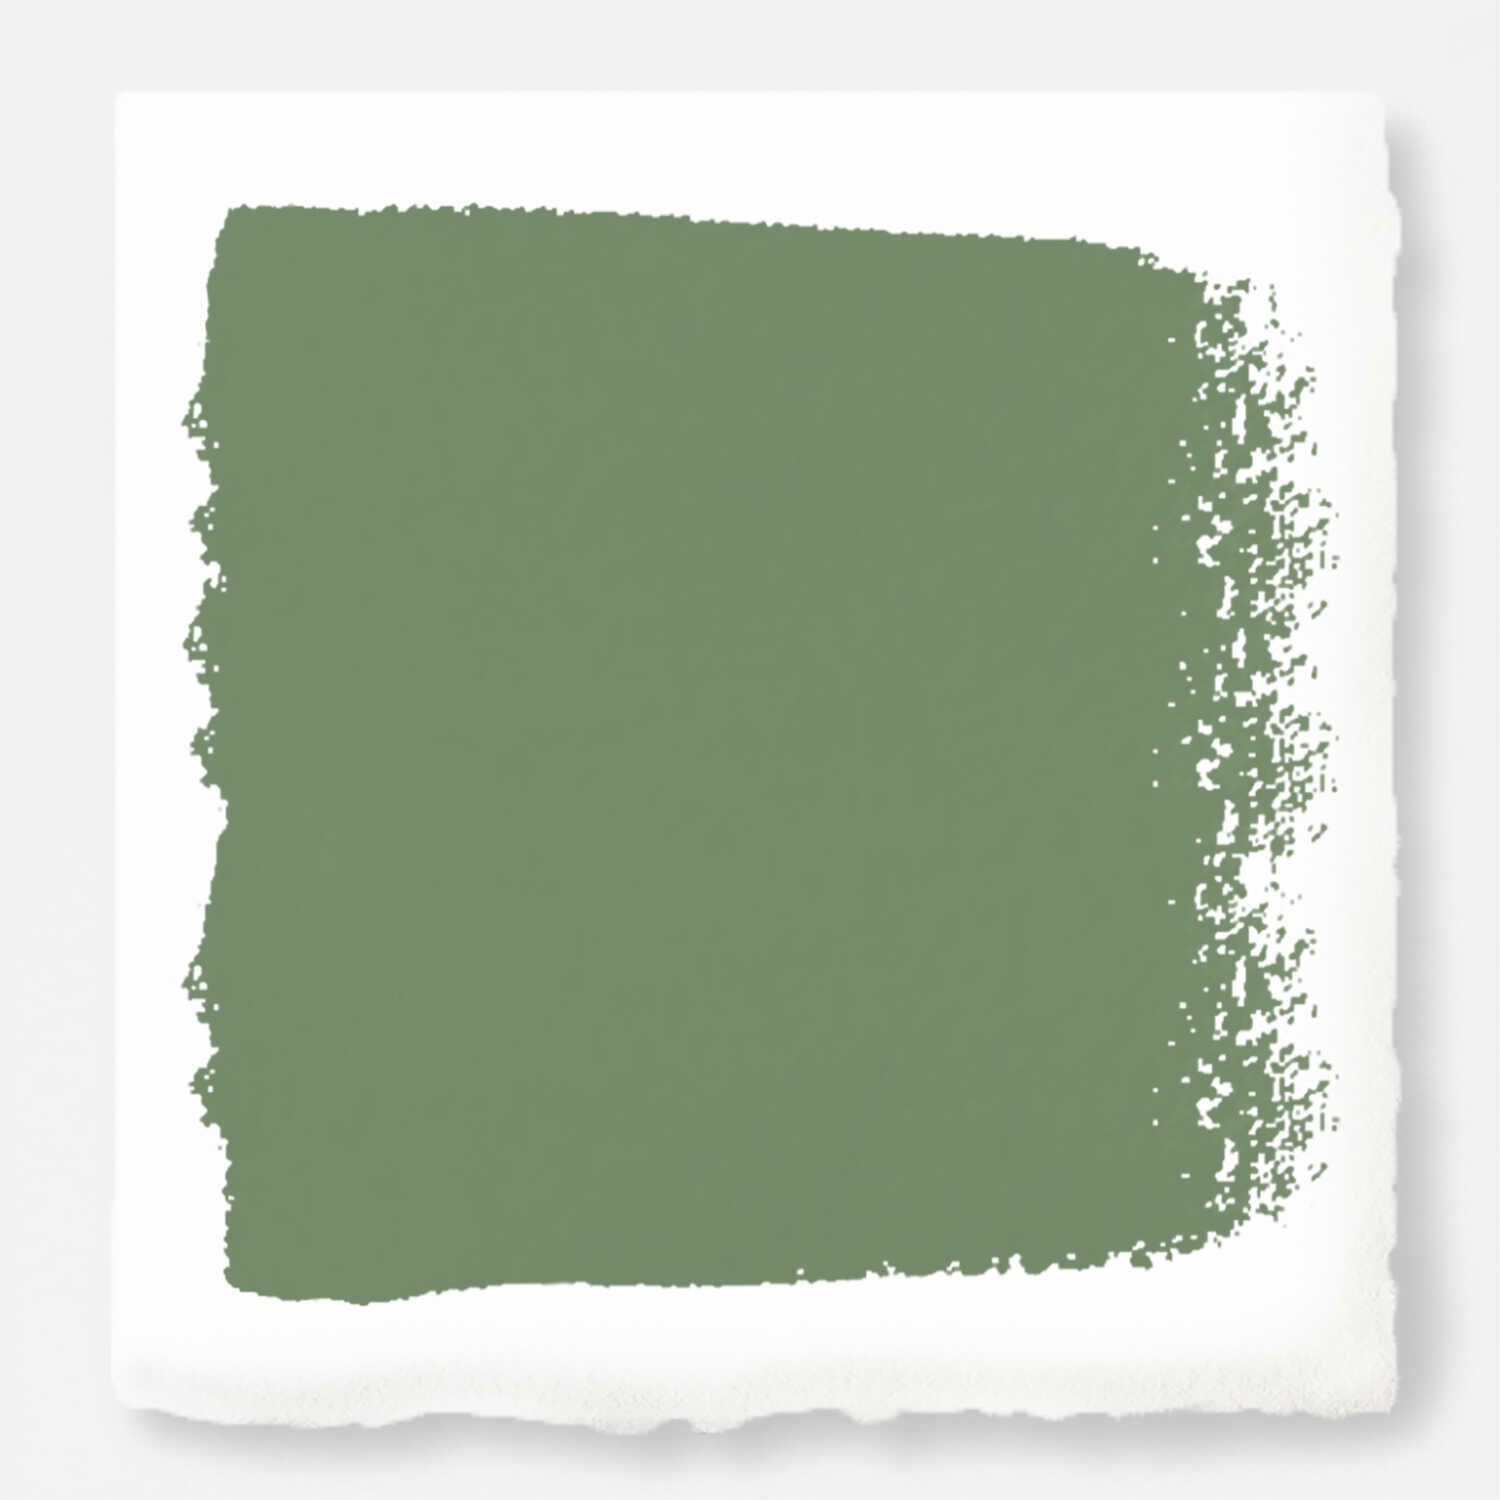 Magnolia Home  Semi-Gloss  Magnolia Green  Exterior Paint and Primer  1 gal.